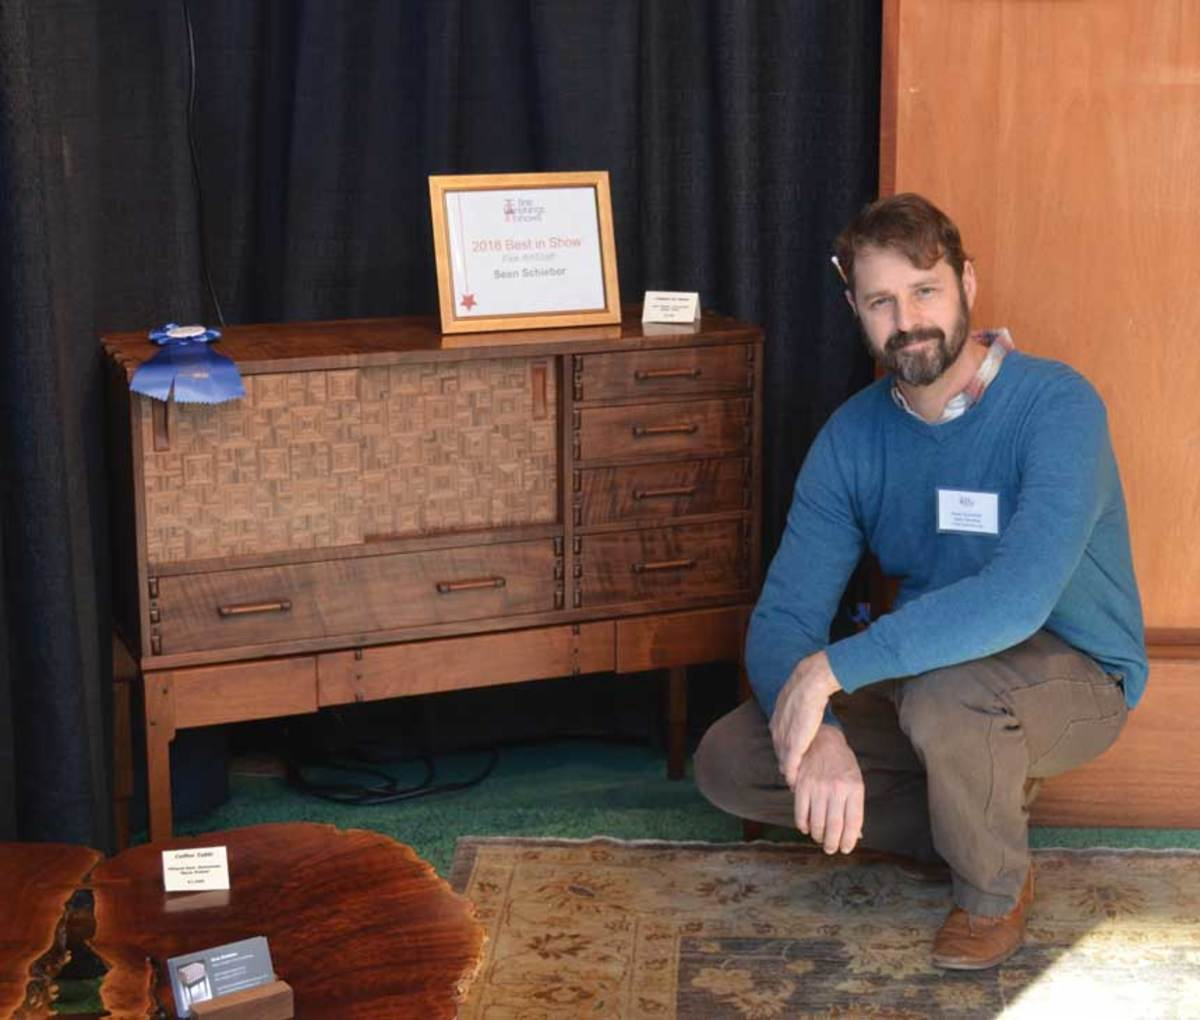 Sean Schieber, winner of Best Fine Art/Craft, and his walnut parquetry chest.